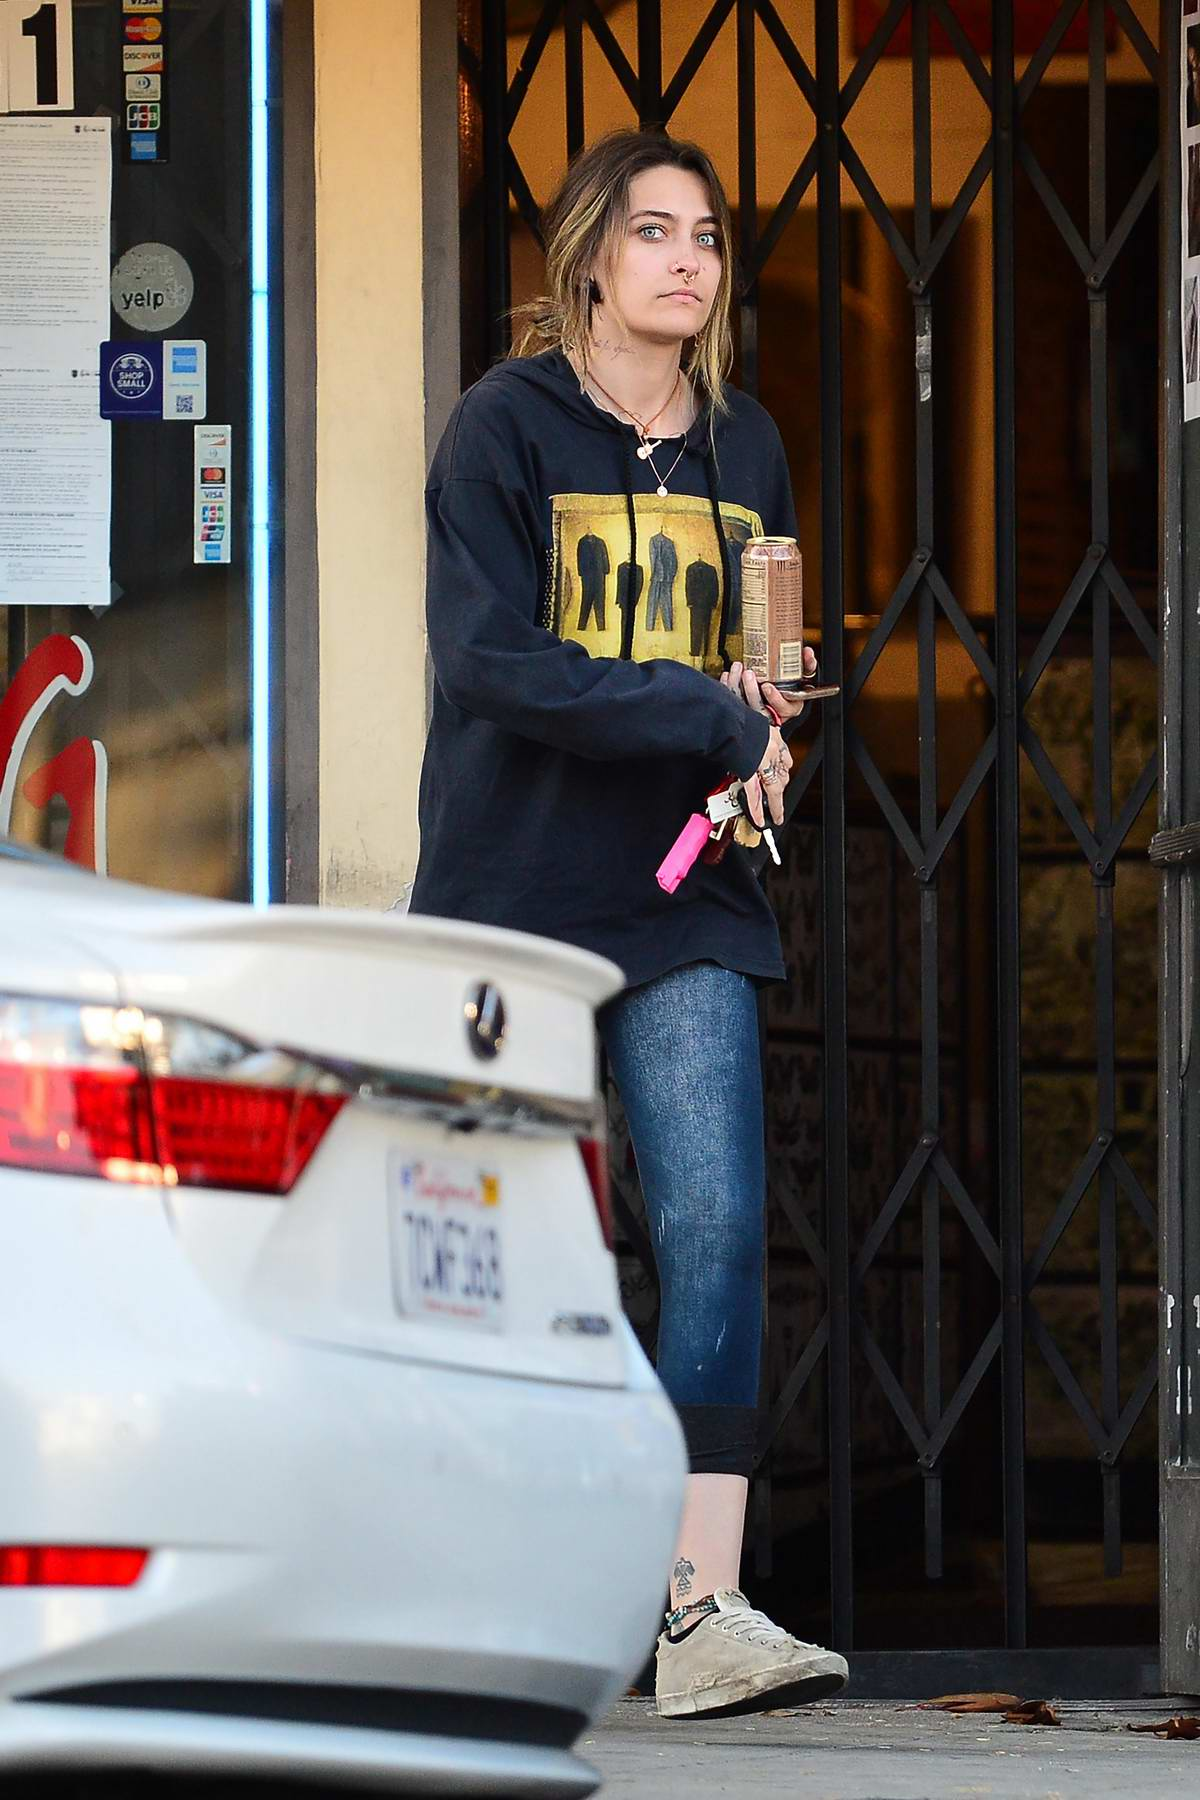 Paris Jackson sports a new neck tattoo as she leaves a tattoo parlor in West Hollywood, California